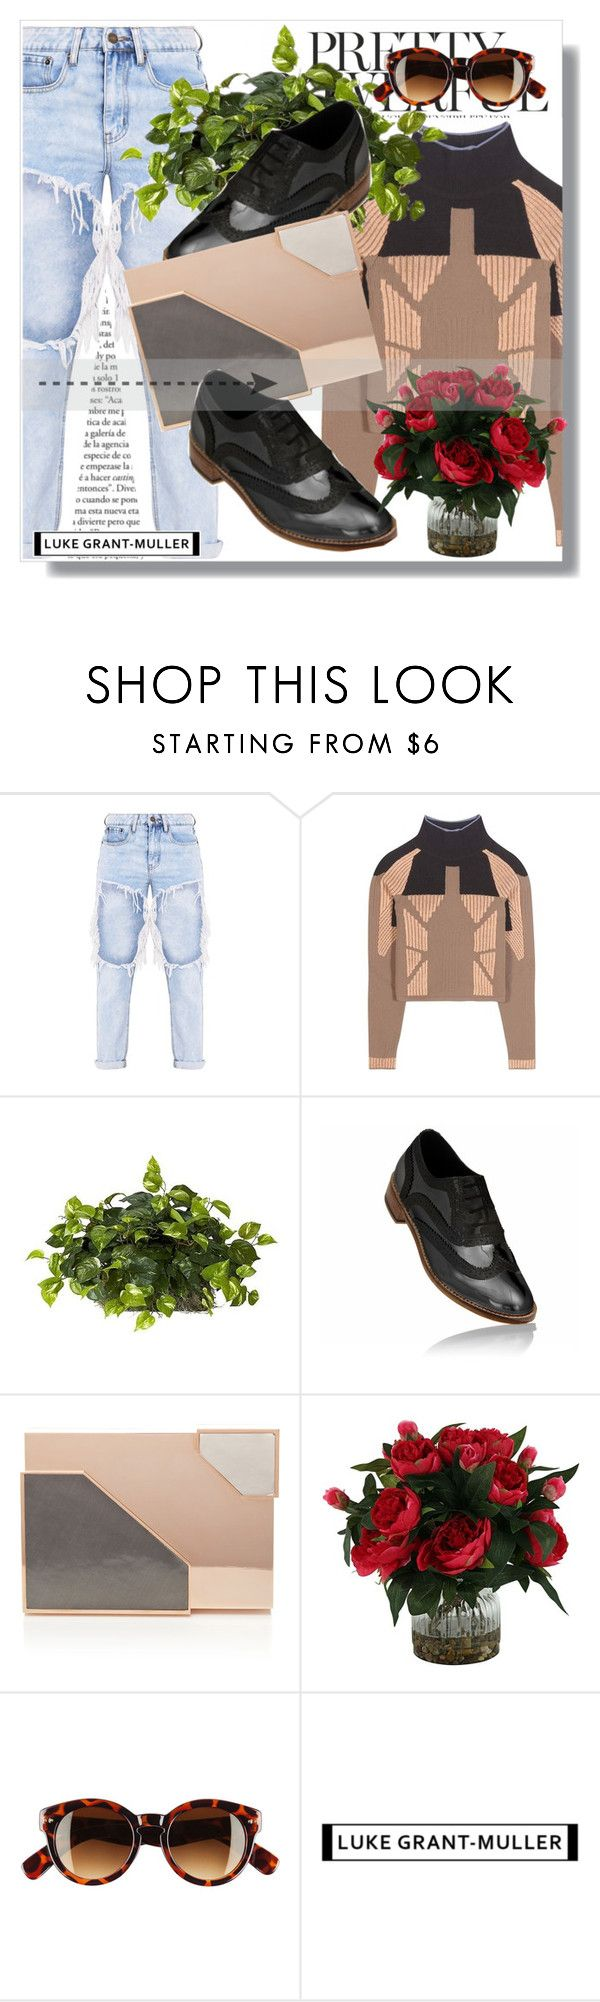 """Use the promocode 'WELCOME' for a £50 discount!!"" by dianagrigoryan ❤ liked on Polyvore featuring adidas Originals, Nearly Natural, Lee Savage and H&M"